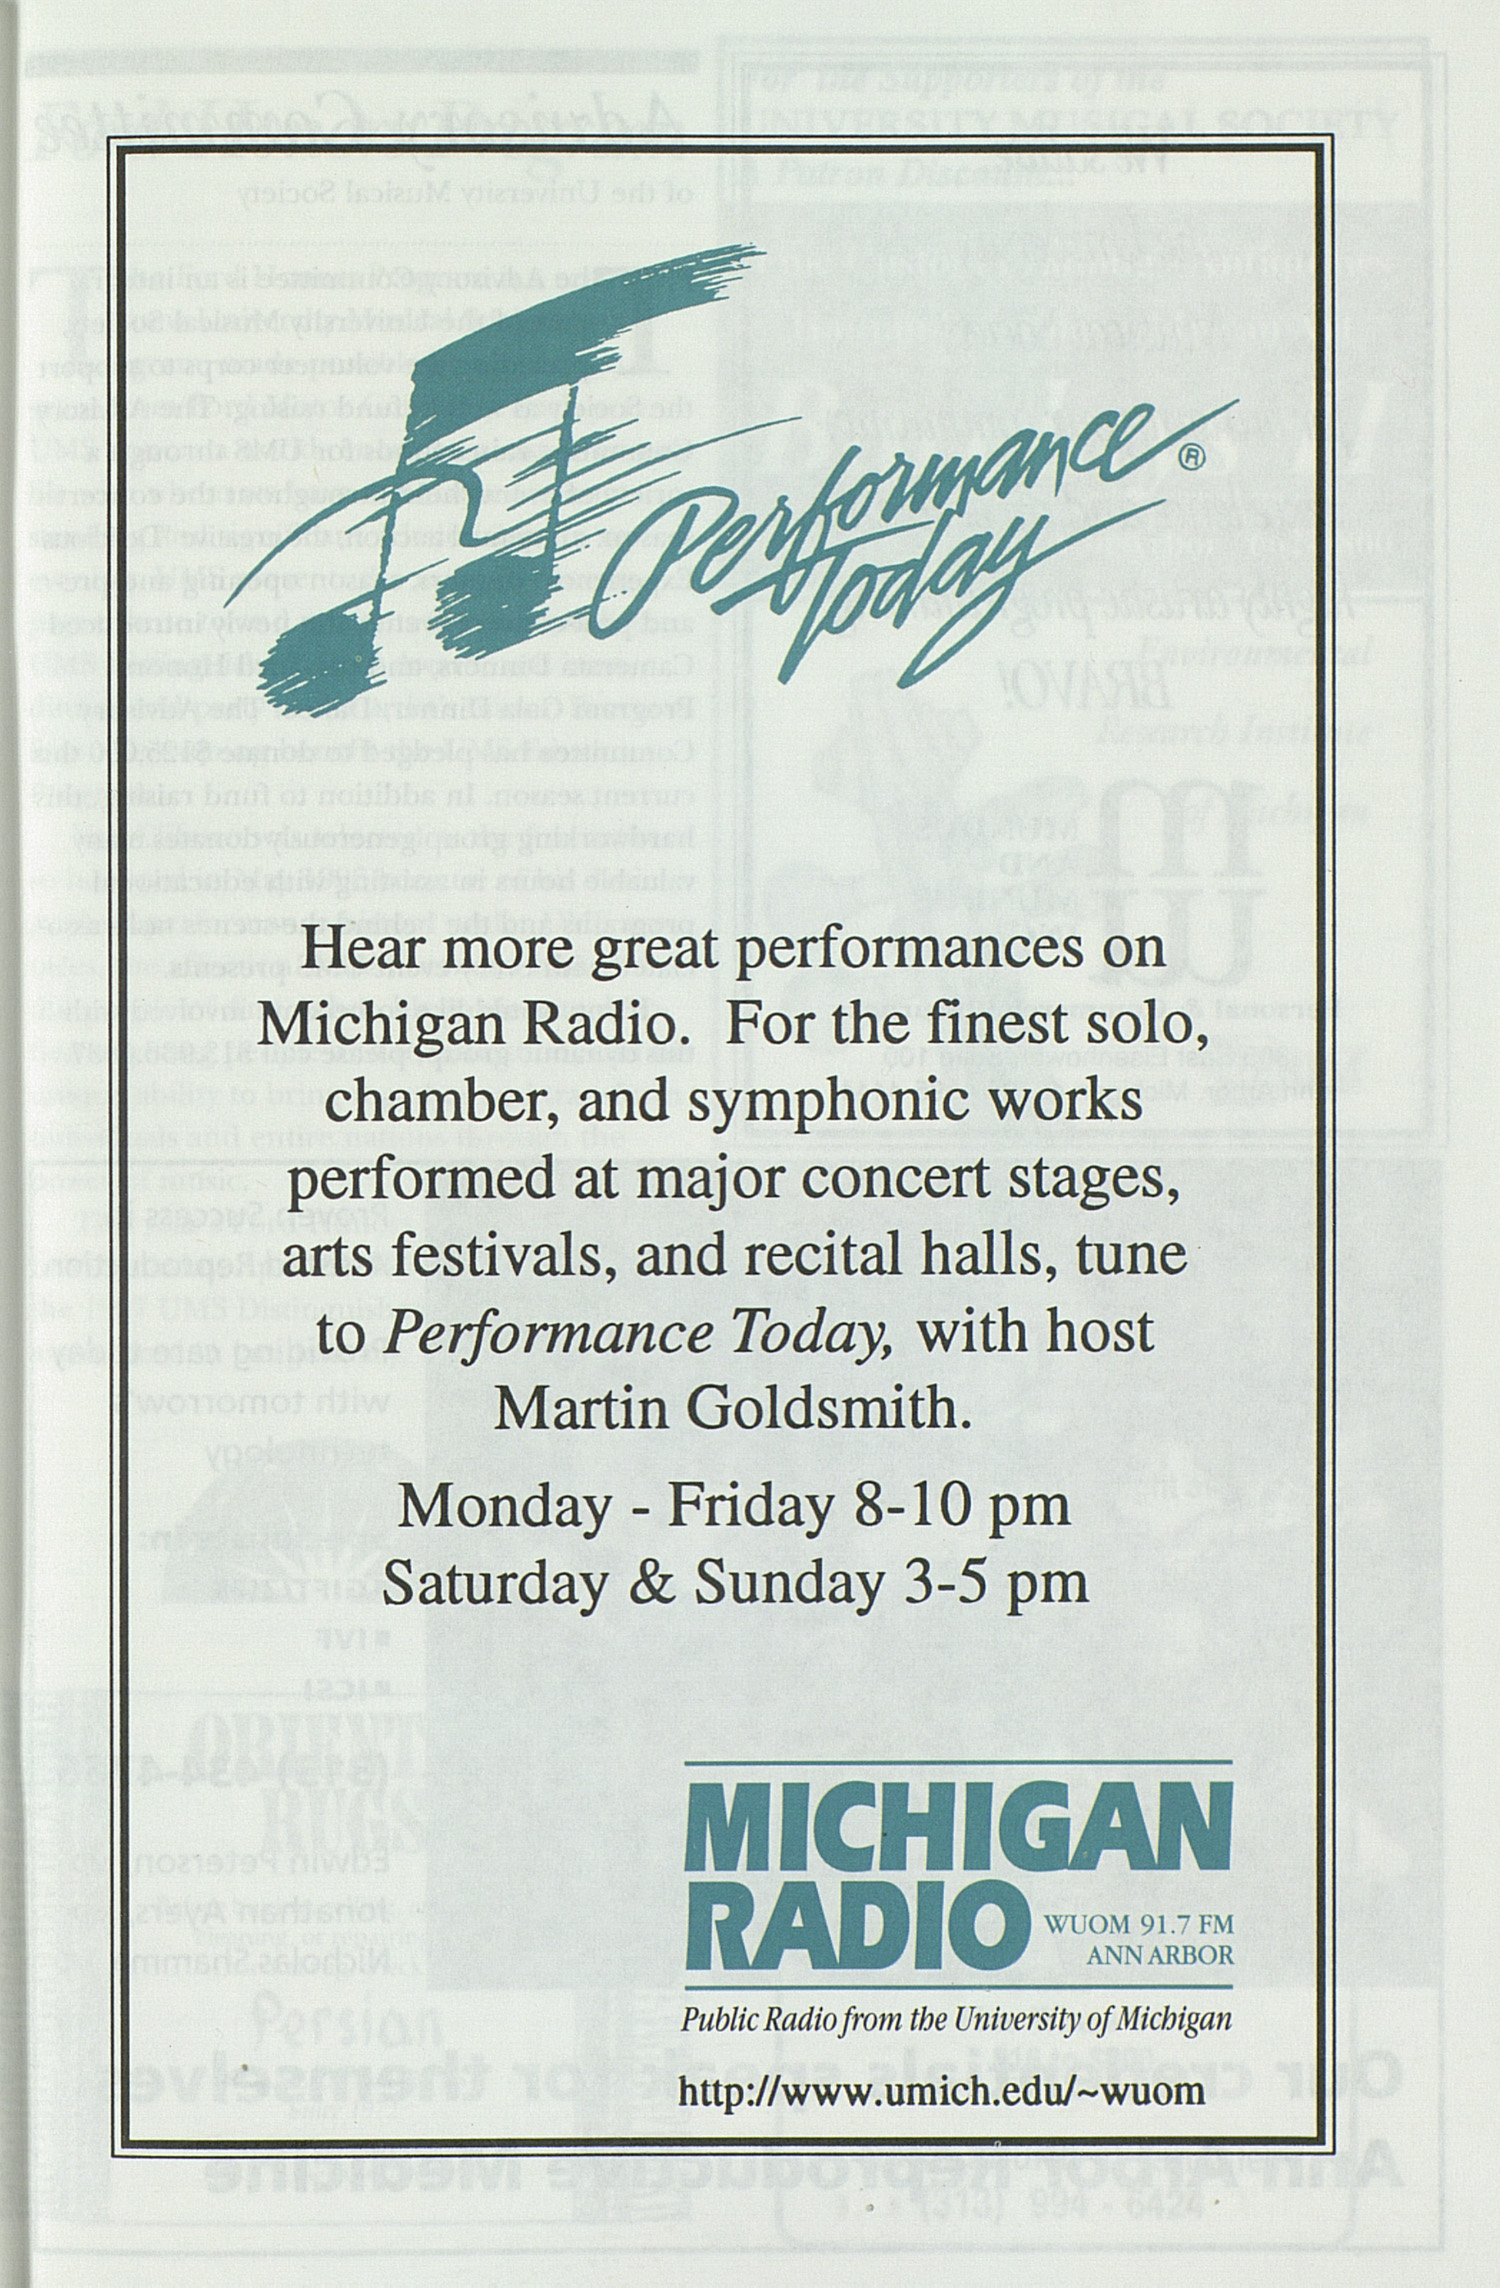 UMS Concert Program, Wednesday Jan. 08 To 23: University Musical Society: 1996-1997 Winter - Wednesday Jan. 08 To 23 --  image